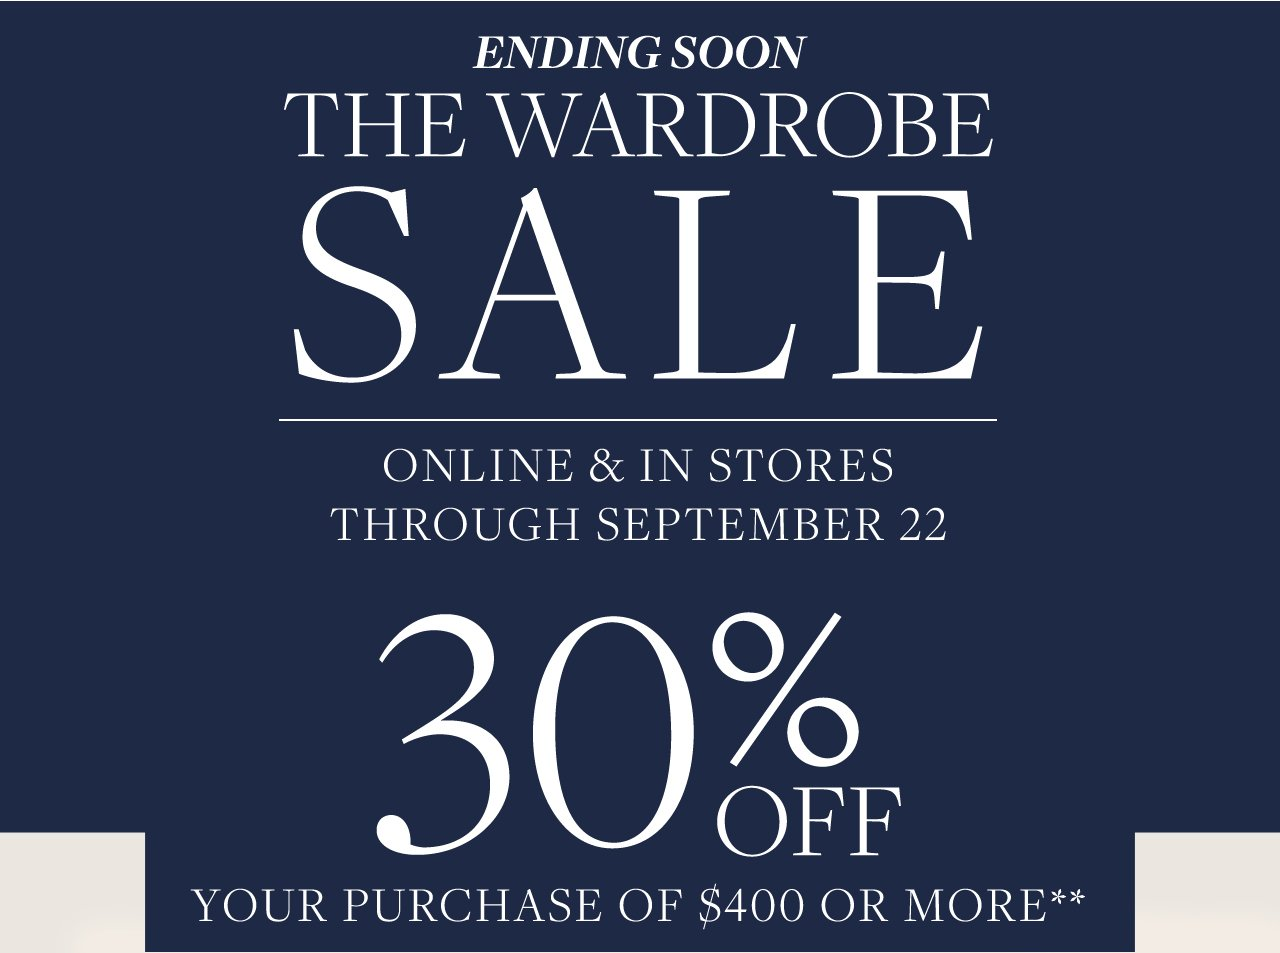 Ending Soon The Wardrobe Sale Online and In Stores through September 22 30% Off Your Purchase of $400 Or More